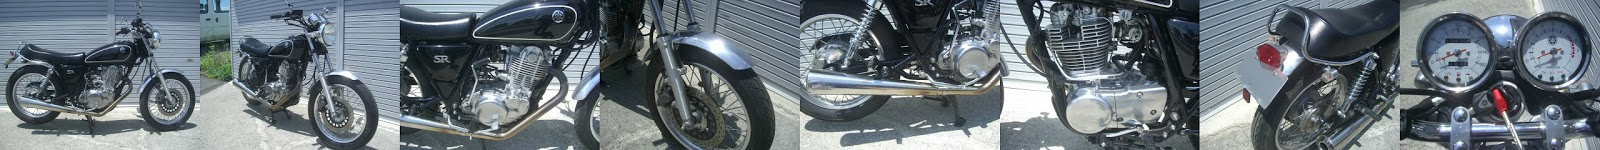 SR400fi with Over racing exhaust